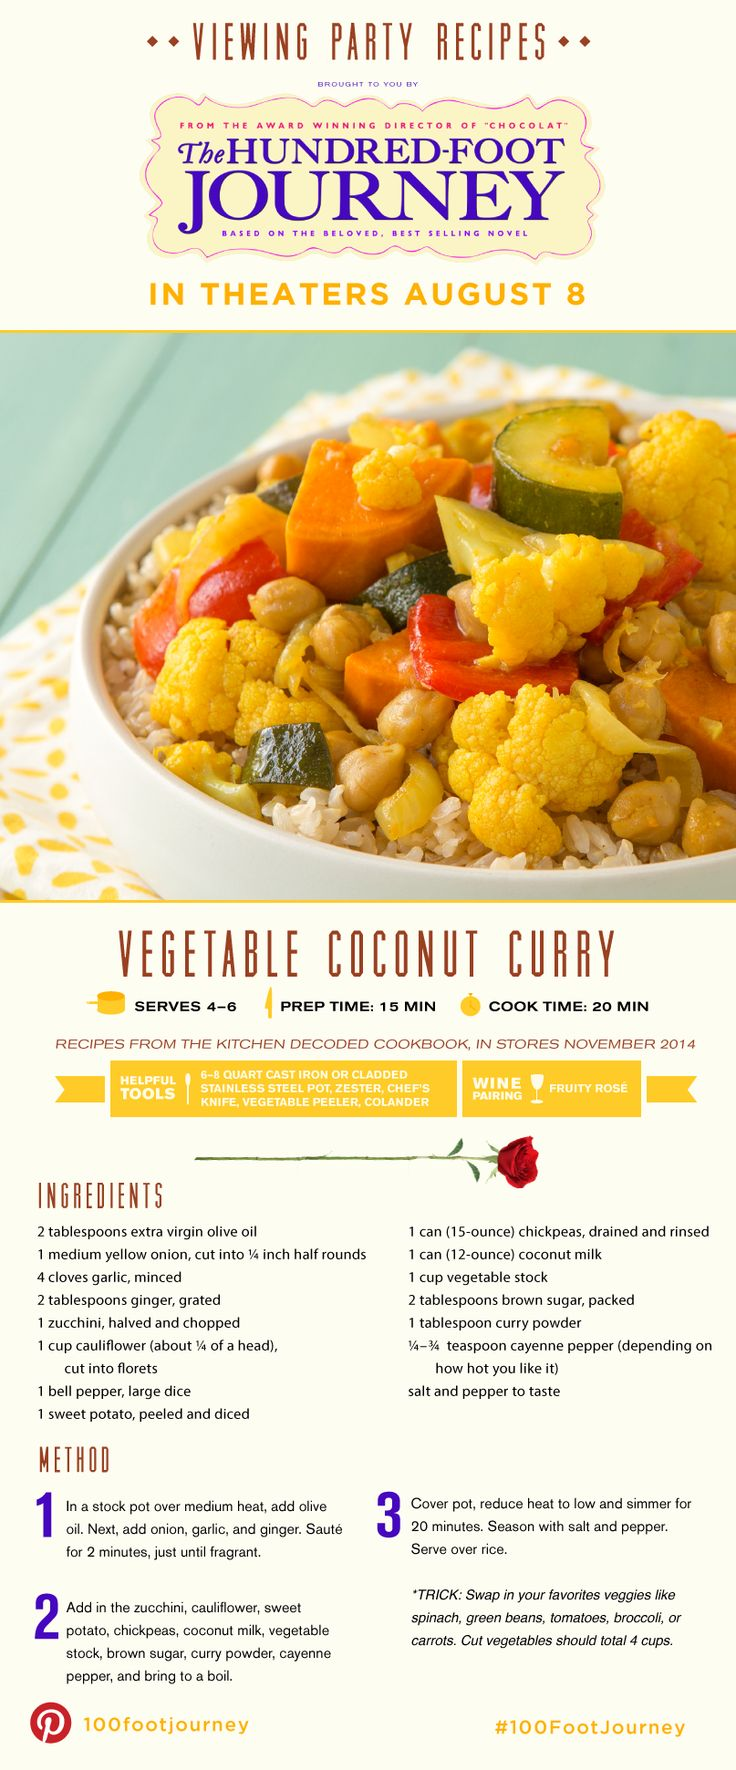 Try our yummy Vegetable Coconut Curry recipe. And get more great ...